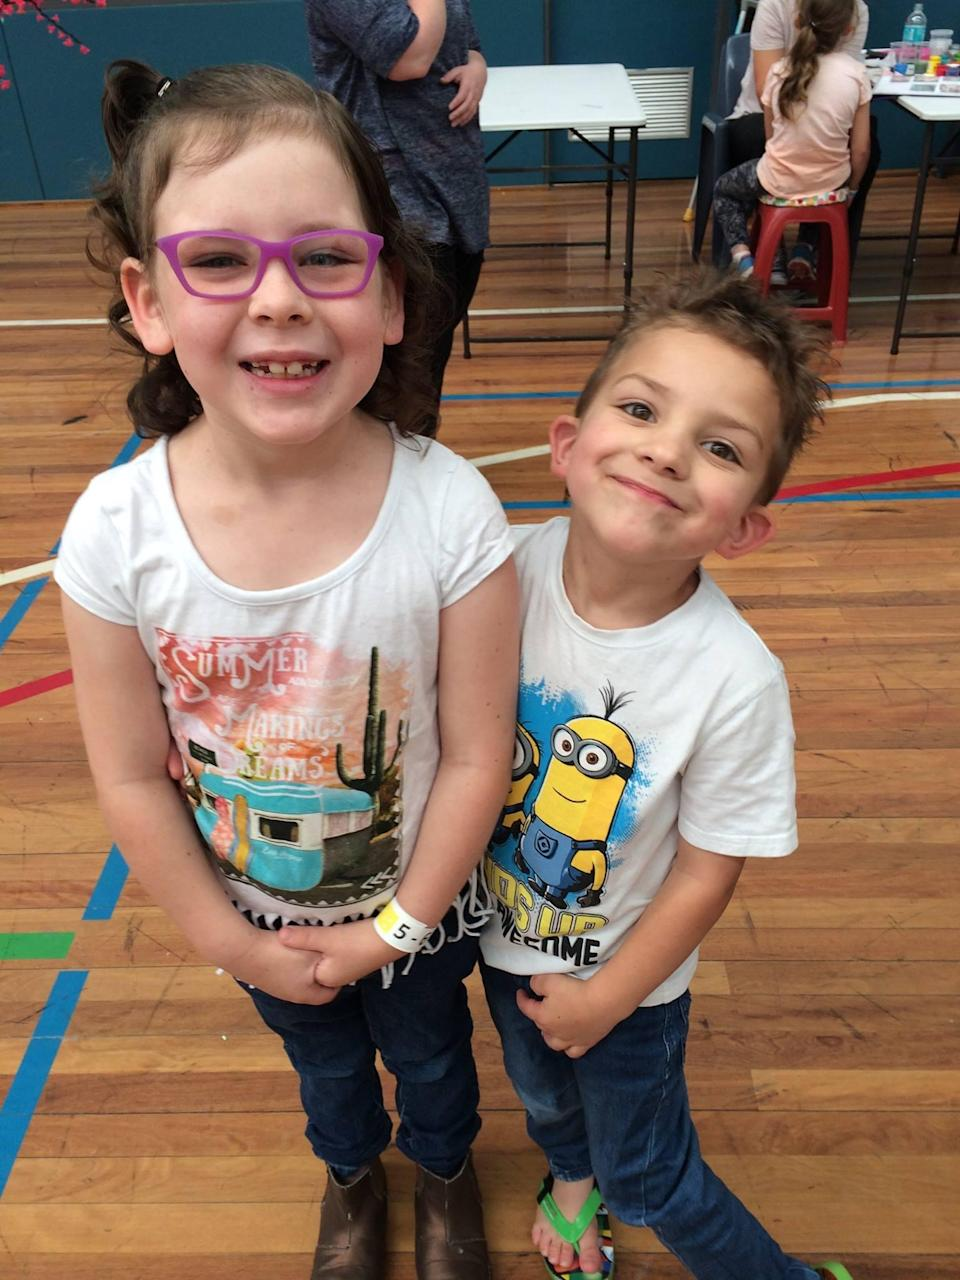 hannah and liam have the same genetic disorder Neurofibromatosis